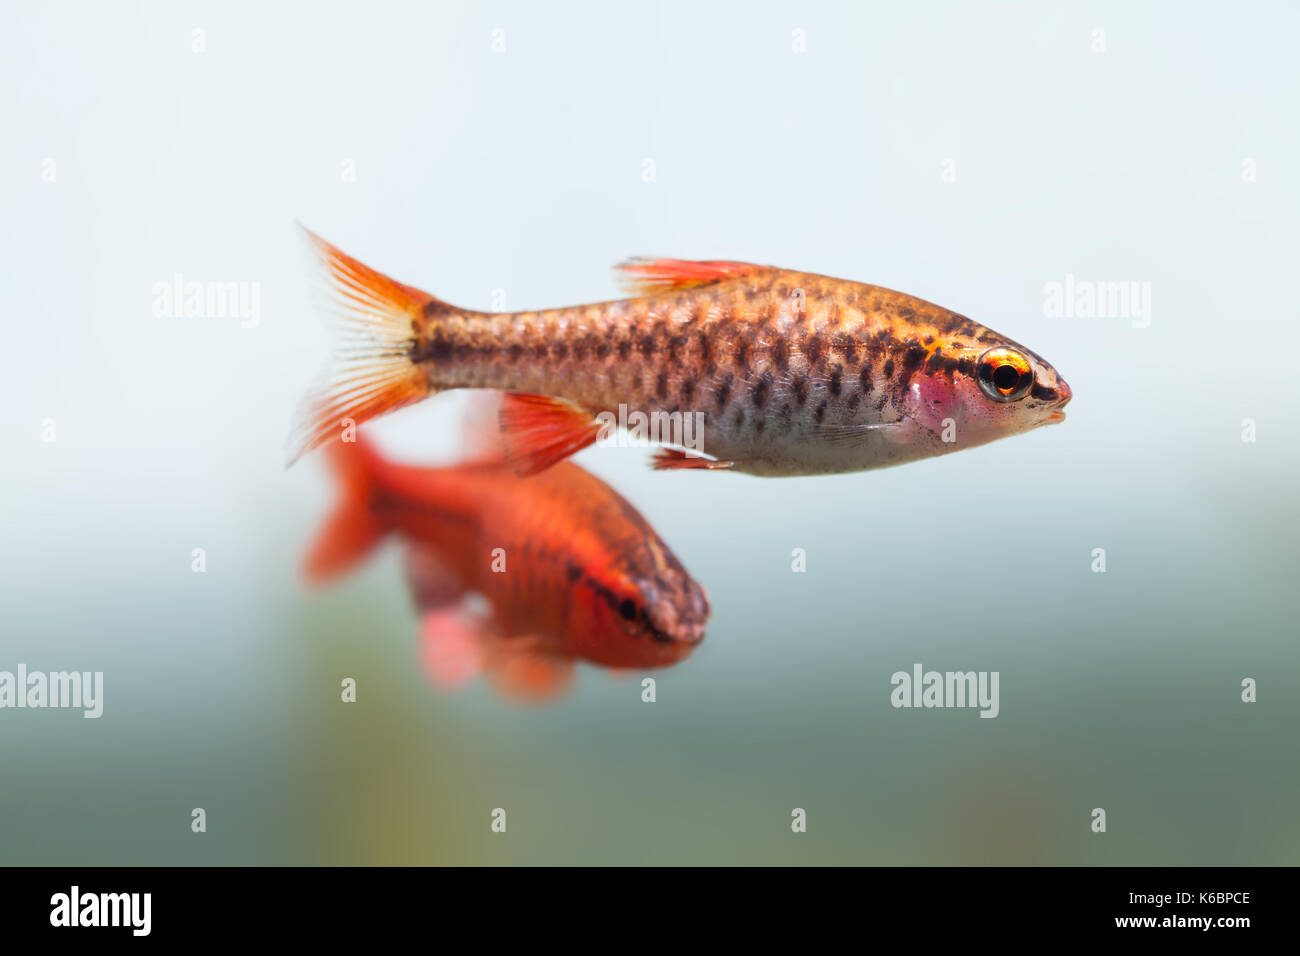 Tropical Fish Tank Stock Photos & Tropical Fish Tank Stock Images ...